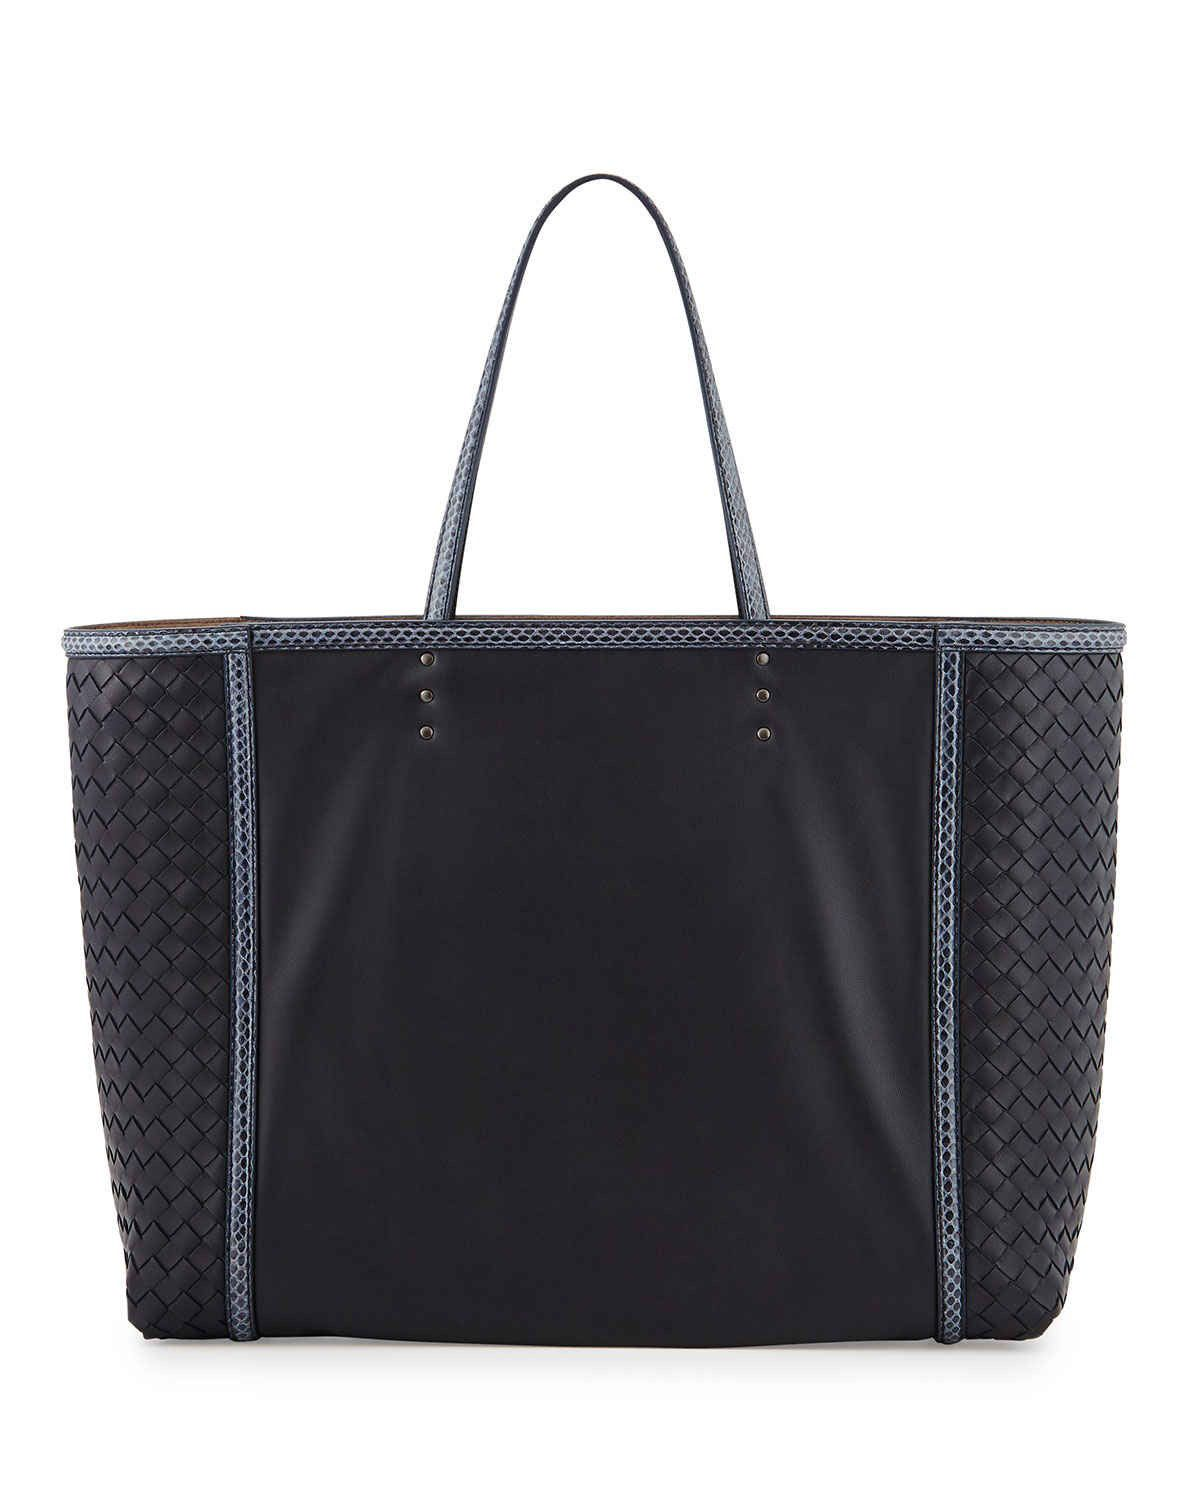 7e32df856fb low-cost Bottega Veneta Medium Snake   Napa Tote Bag Navy deal online, save  up to 70% off dokuz limited offer, no taxes and free shipping.